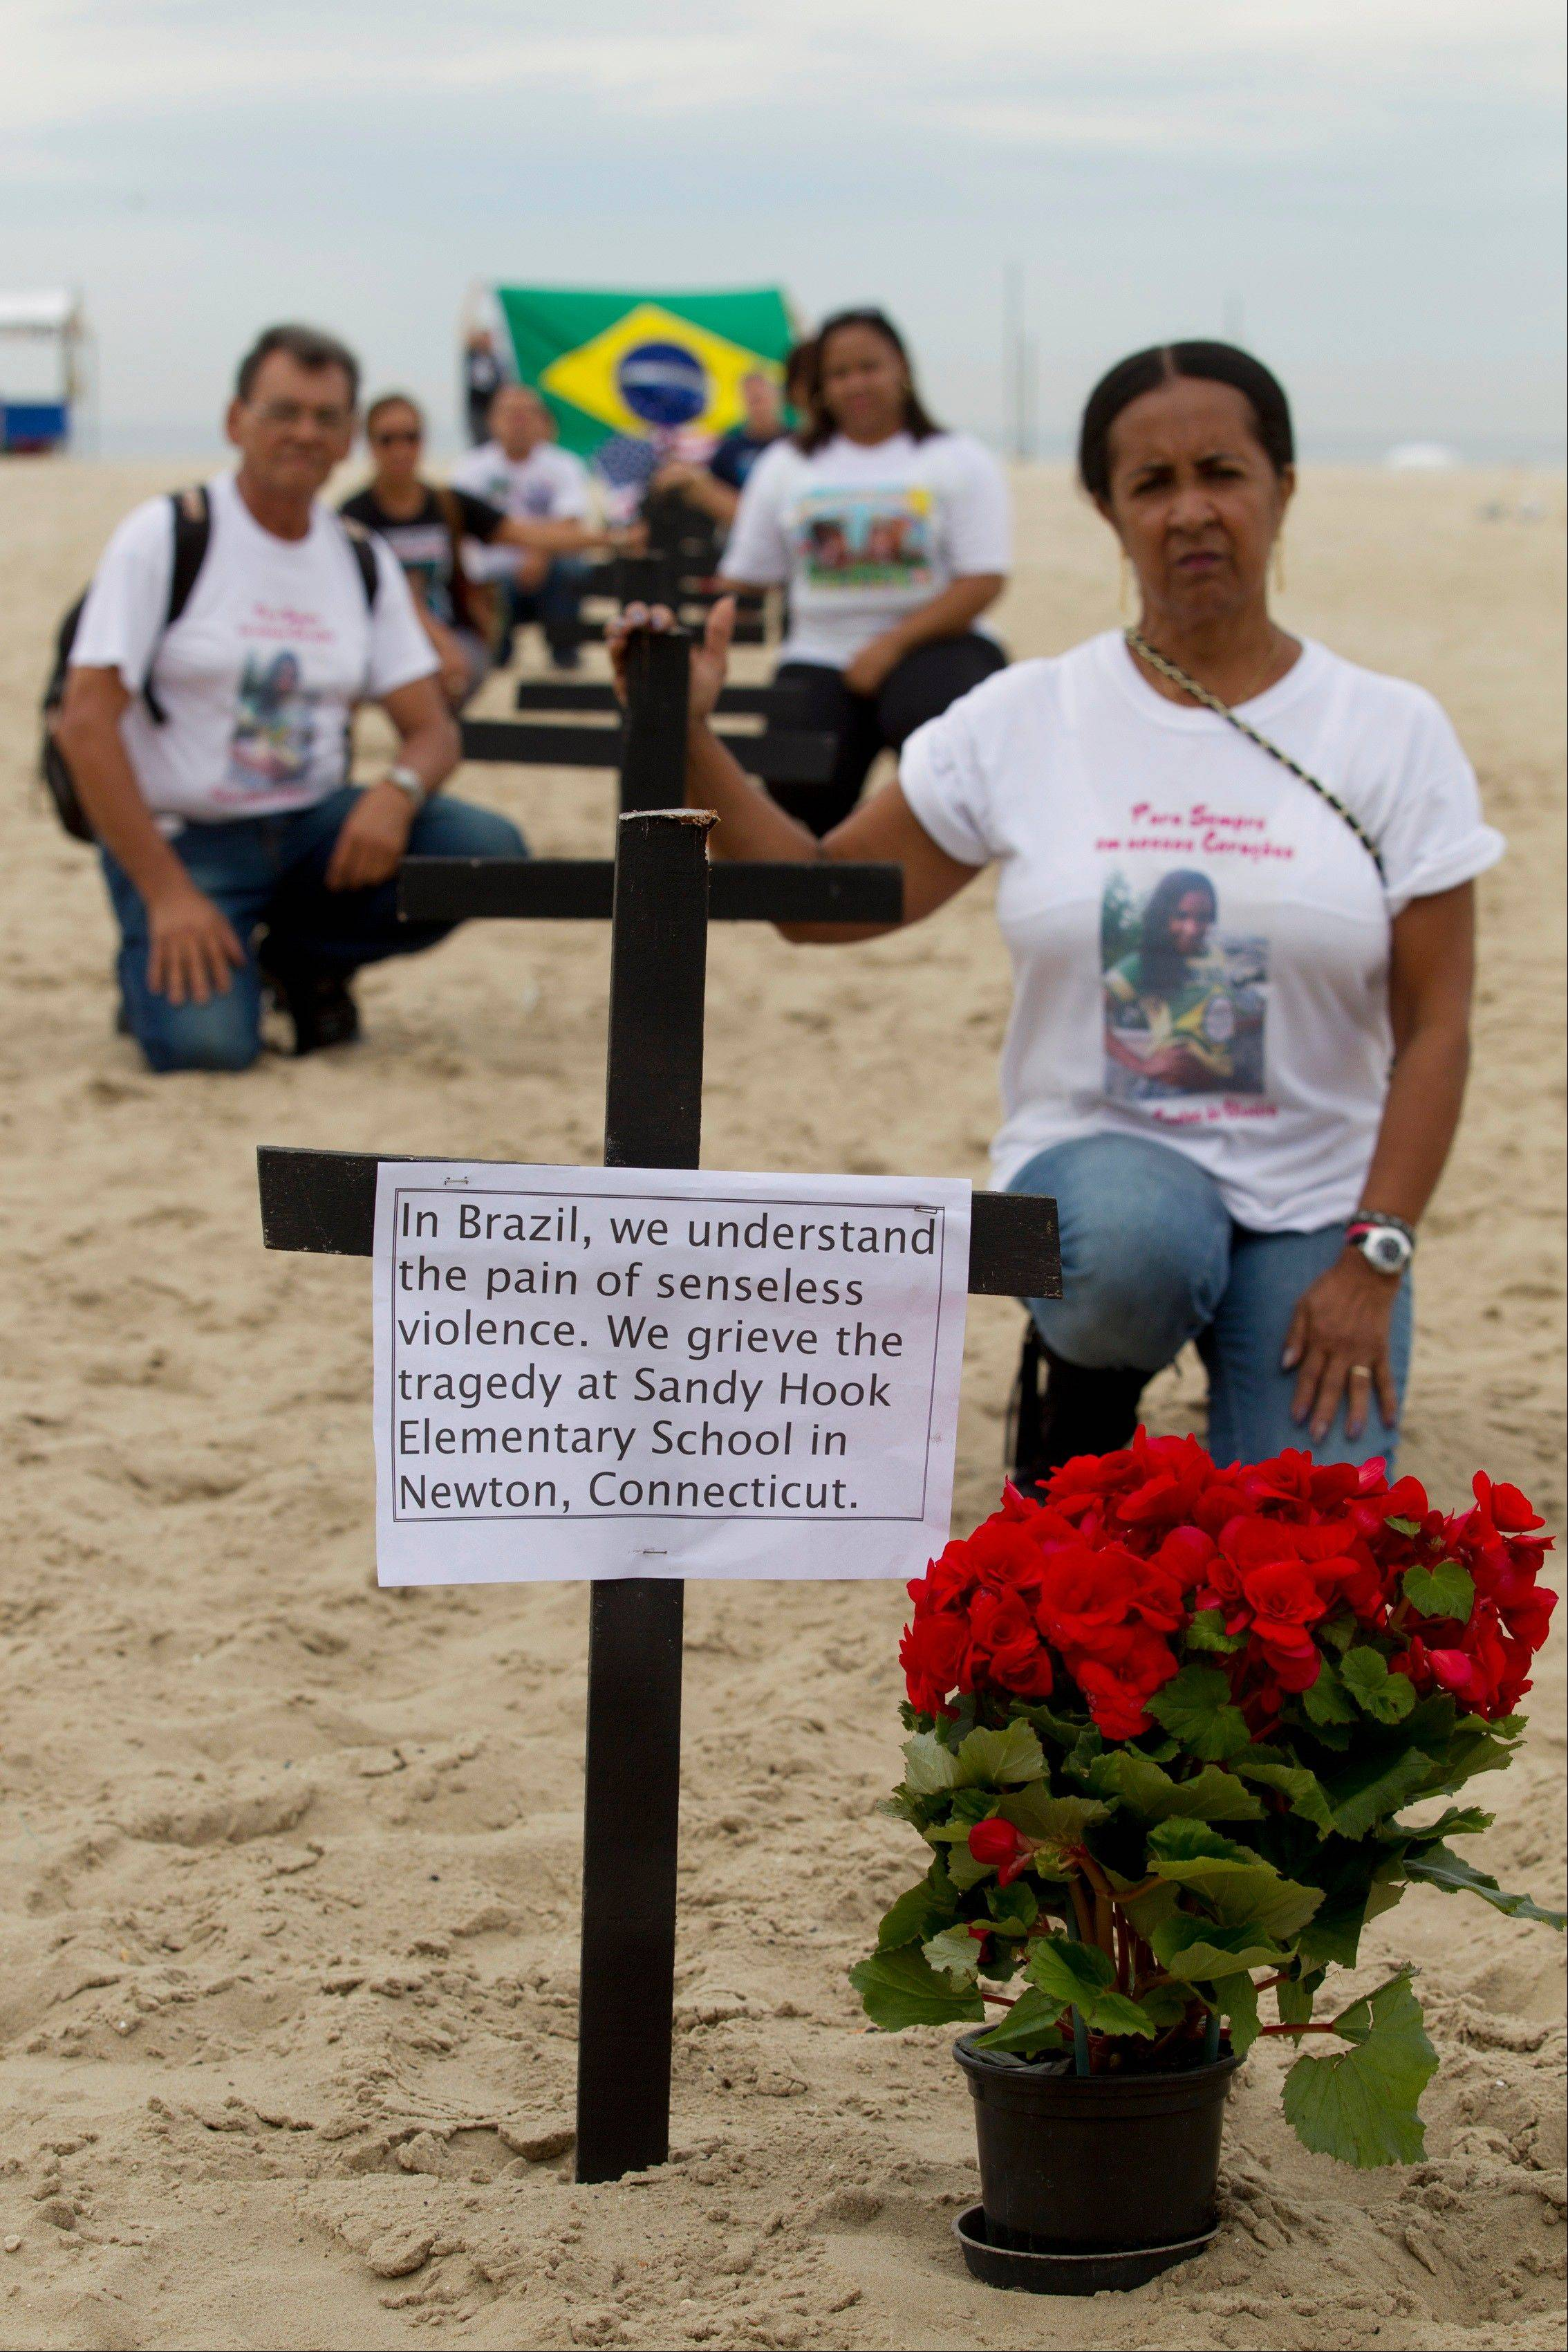 Relatives of victims of violent crimes stand near crosses at the Copacabana Beach, in Rio de Janeiro, in memory of the school shooting victims in Newtown, Conn. The massacre of 26 children and adults at Sandy Hook Elementary school elicited horror and soul-searching around the world.